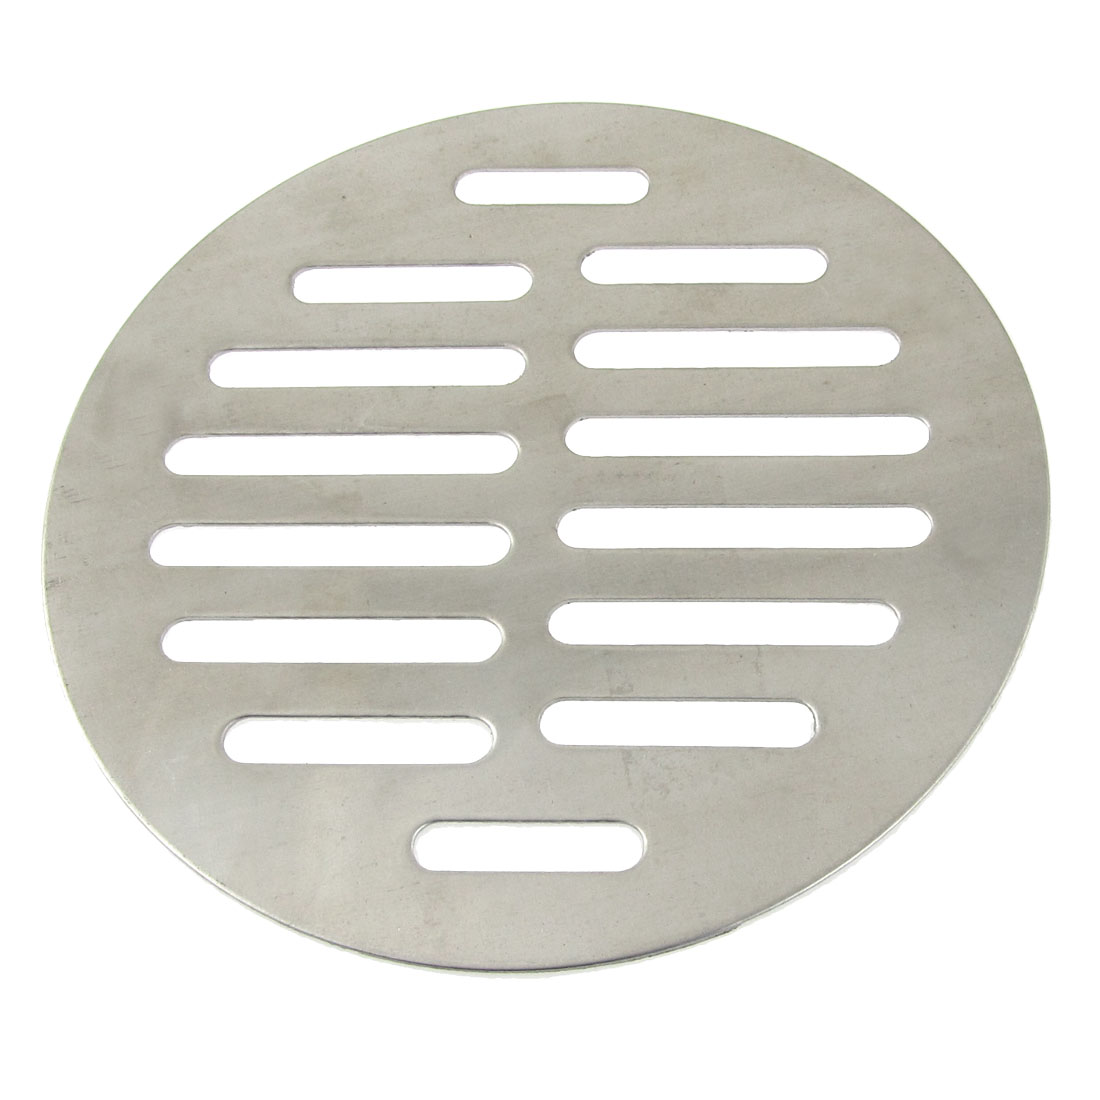 Home Bathroom 14 Holes Round Stainless Steel Floor Drain Cover